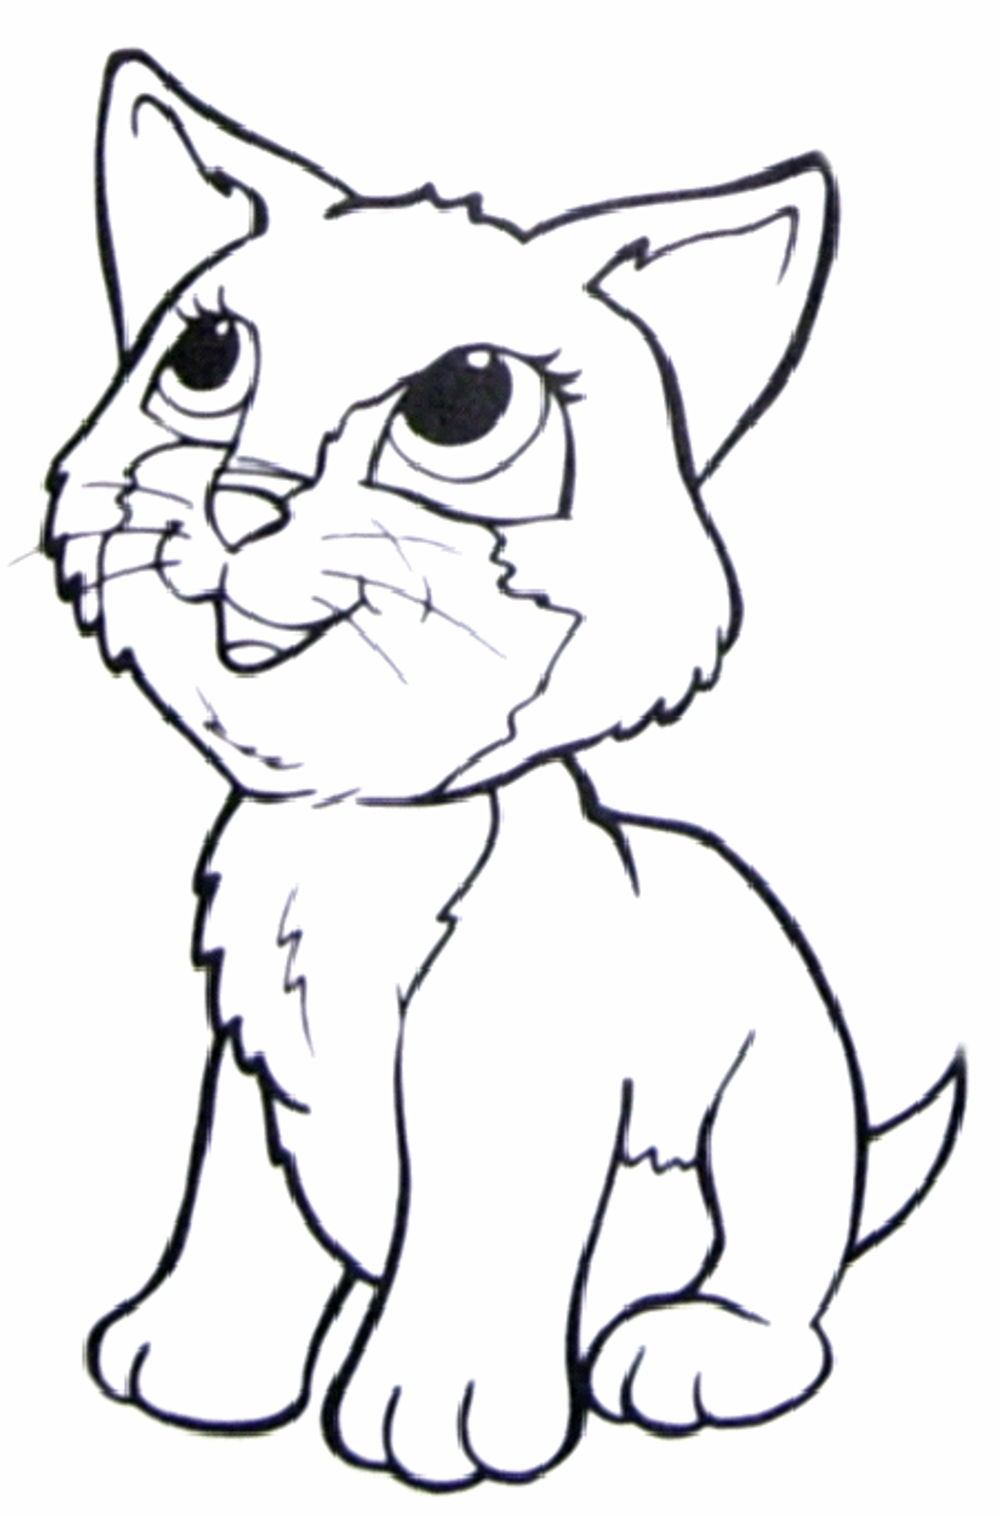 Print download the benefit of cat coloring pages for Cat coloring pages for toddlers